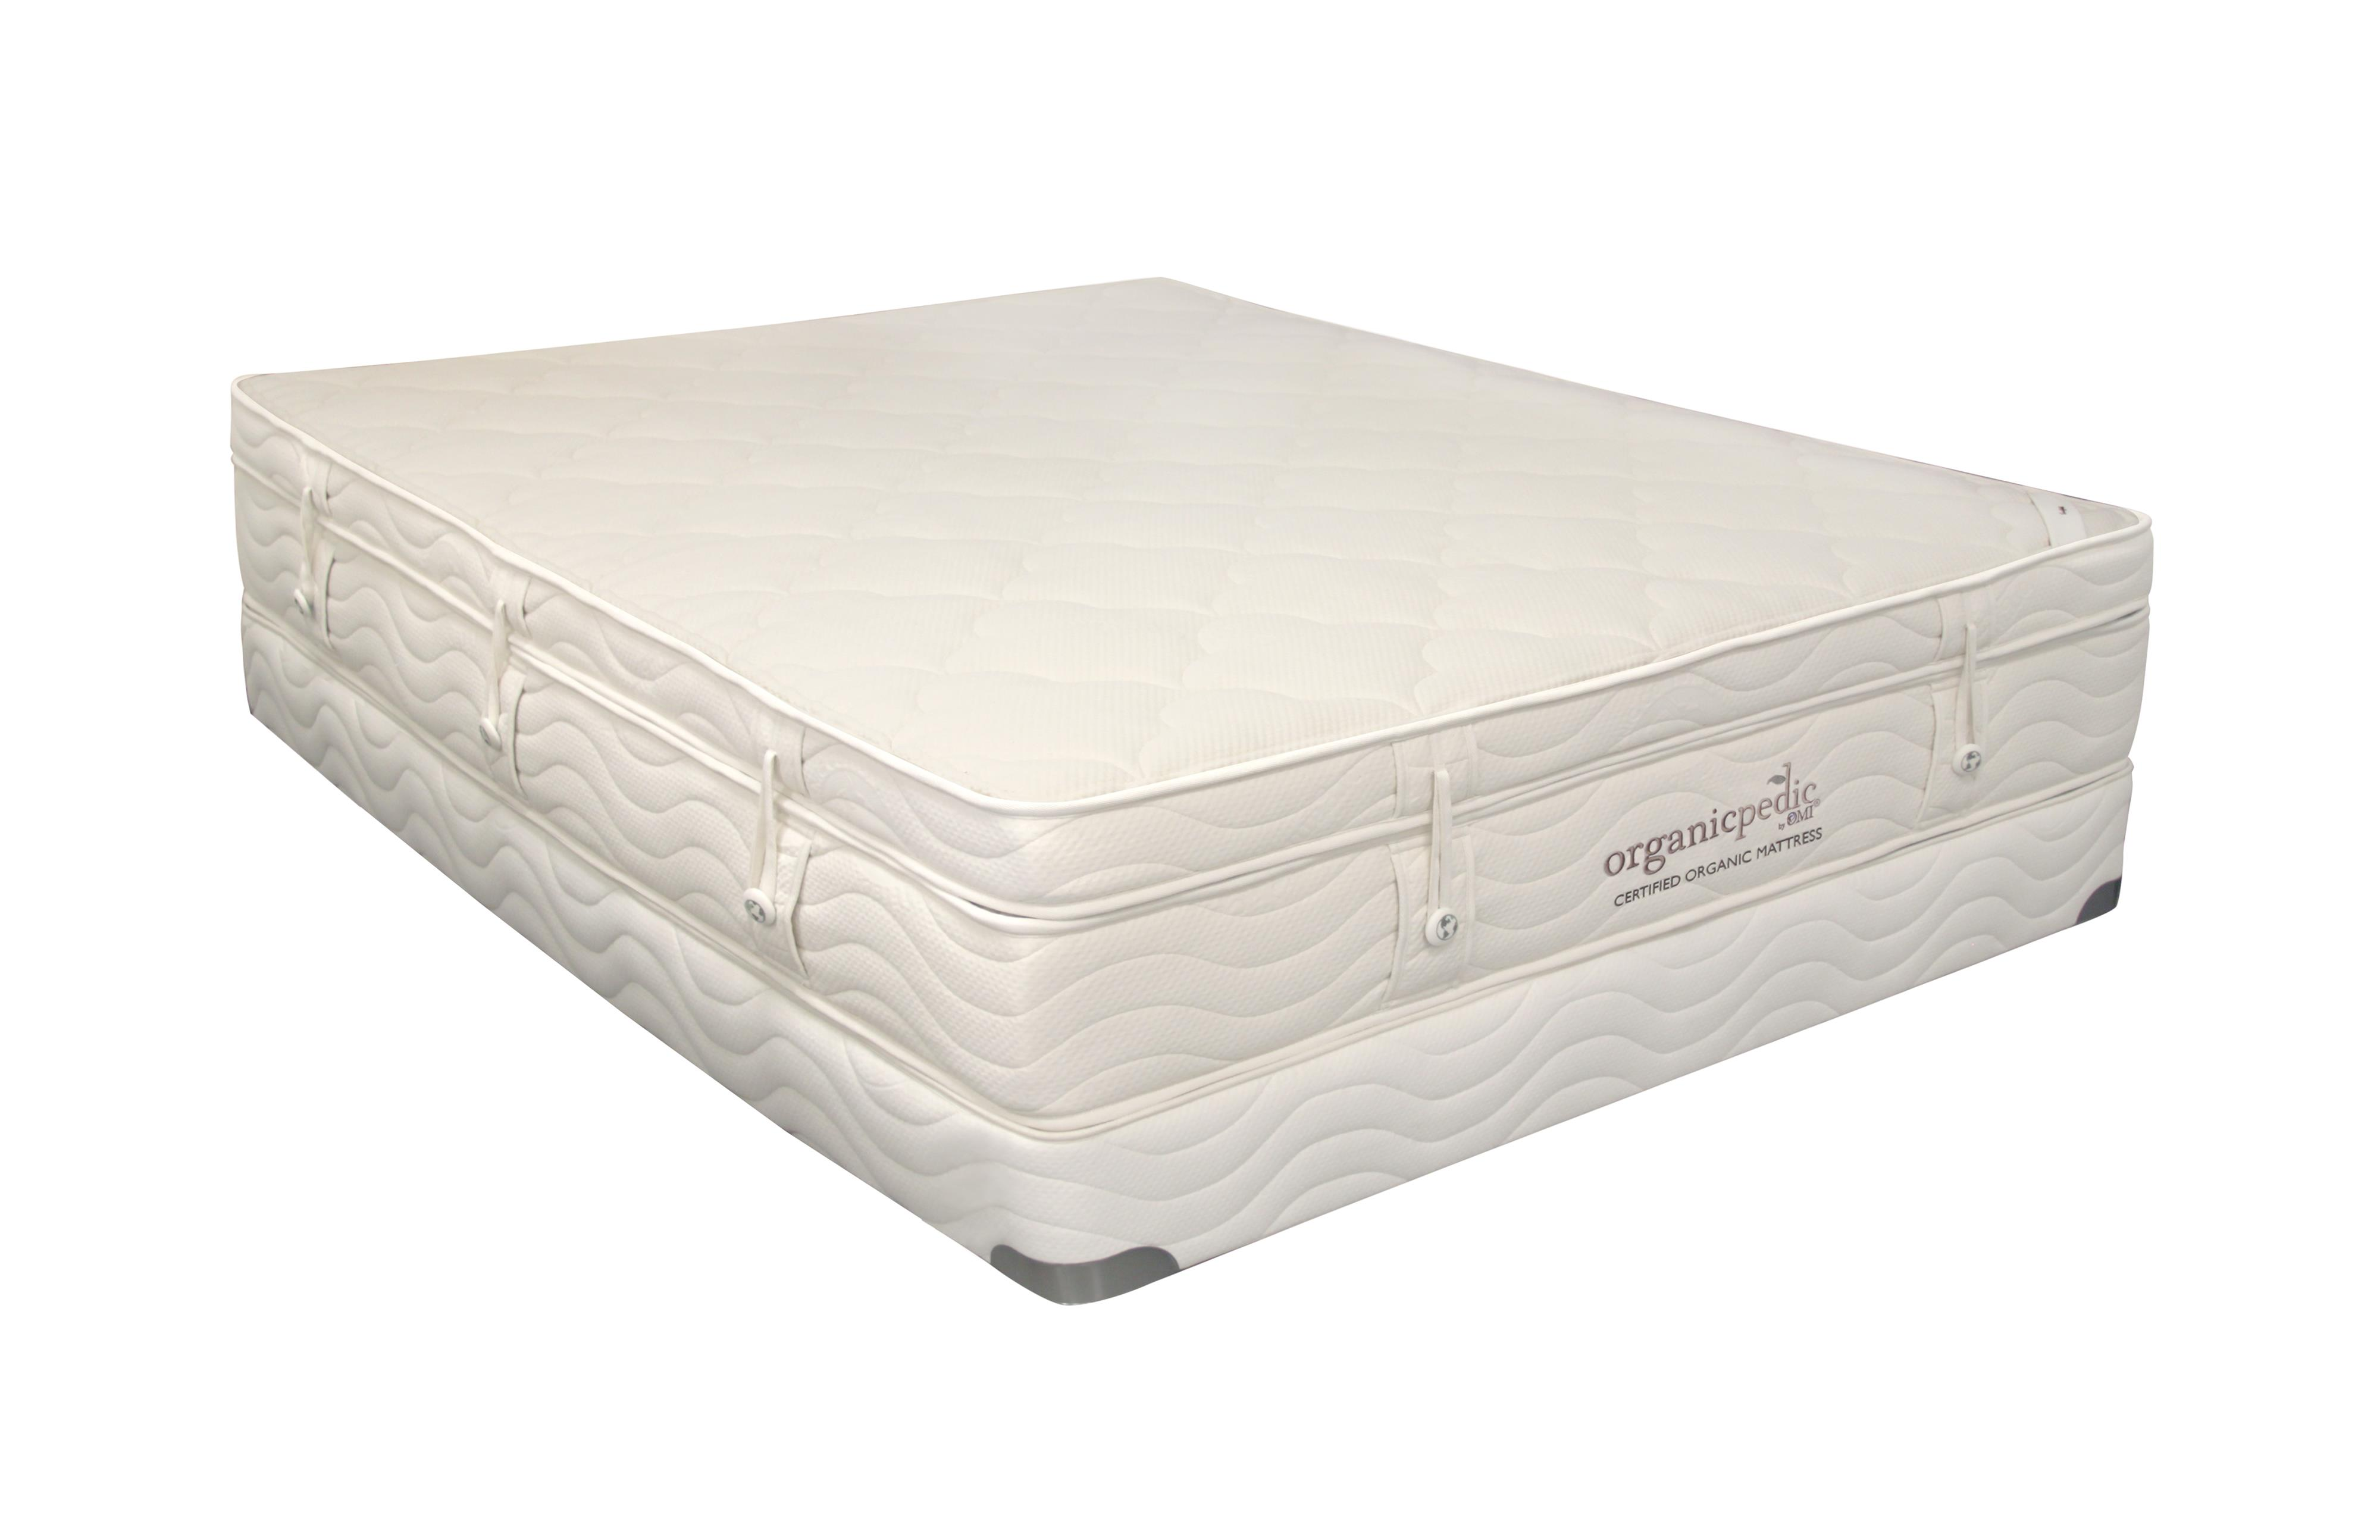 "Organic Mattresses, Inc. (OMI) OrganicPedic Earth Pinnacle Full 13"" XPlush PT Latex Mattress - Item Number: 46-PINNACLE-2C9"